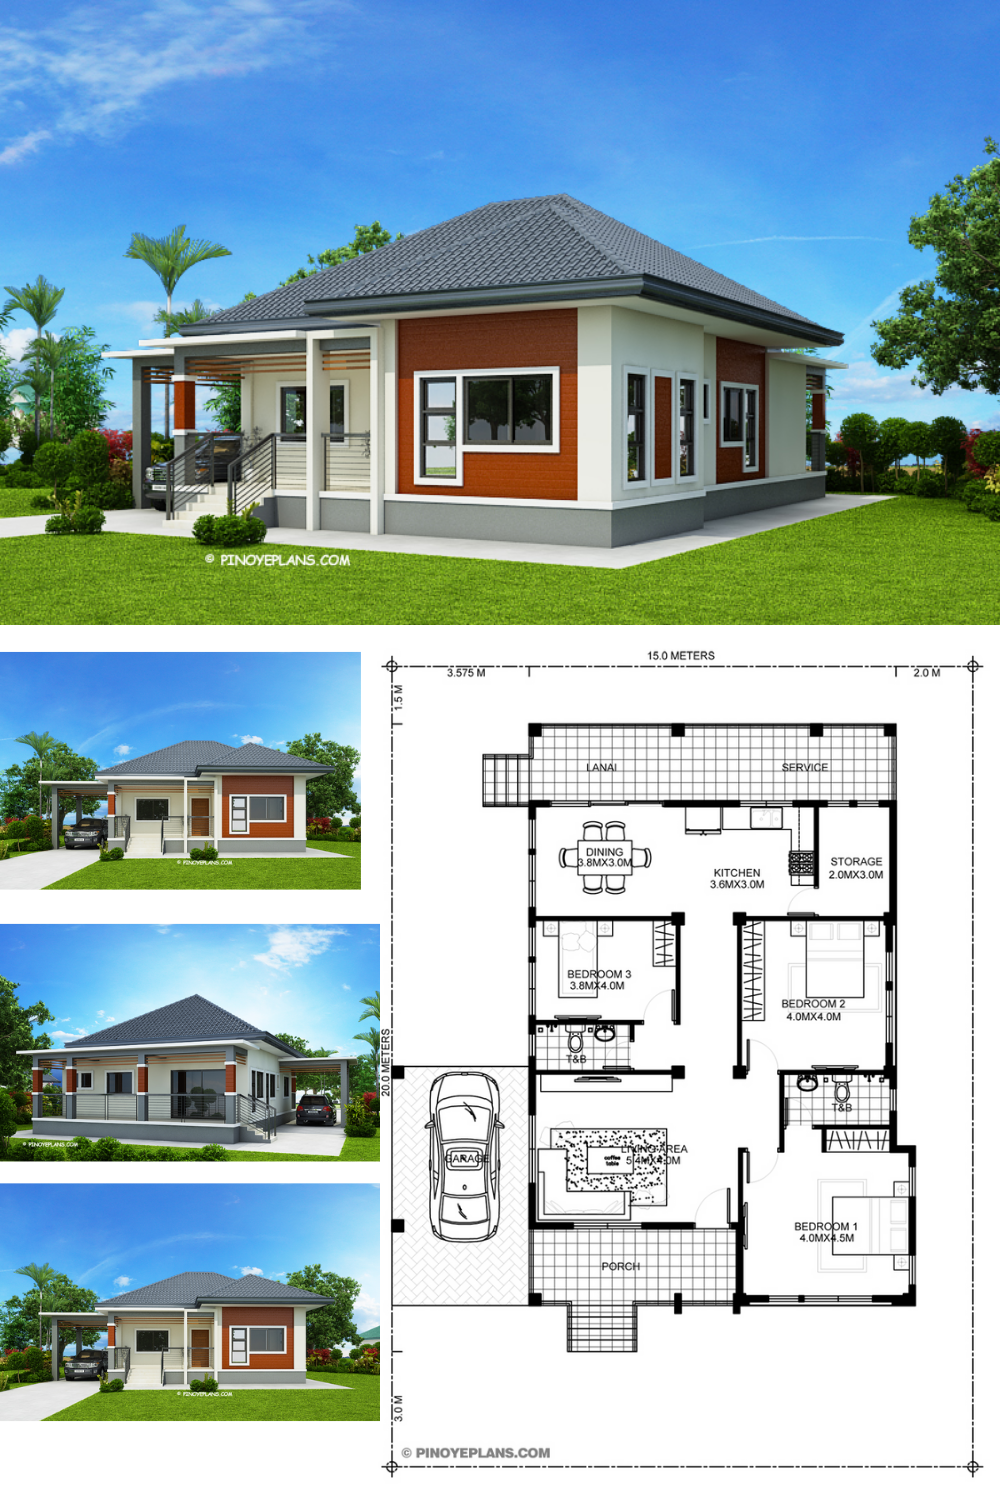 Miranda Elevated 3 Bedroom With 2 Bathroom Modern House Pinoy Eplans Model House Plan Affordable House Plans Modern Bungalow House Plans